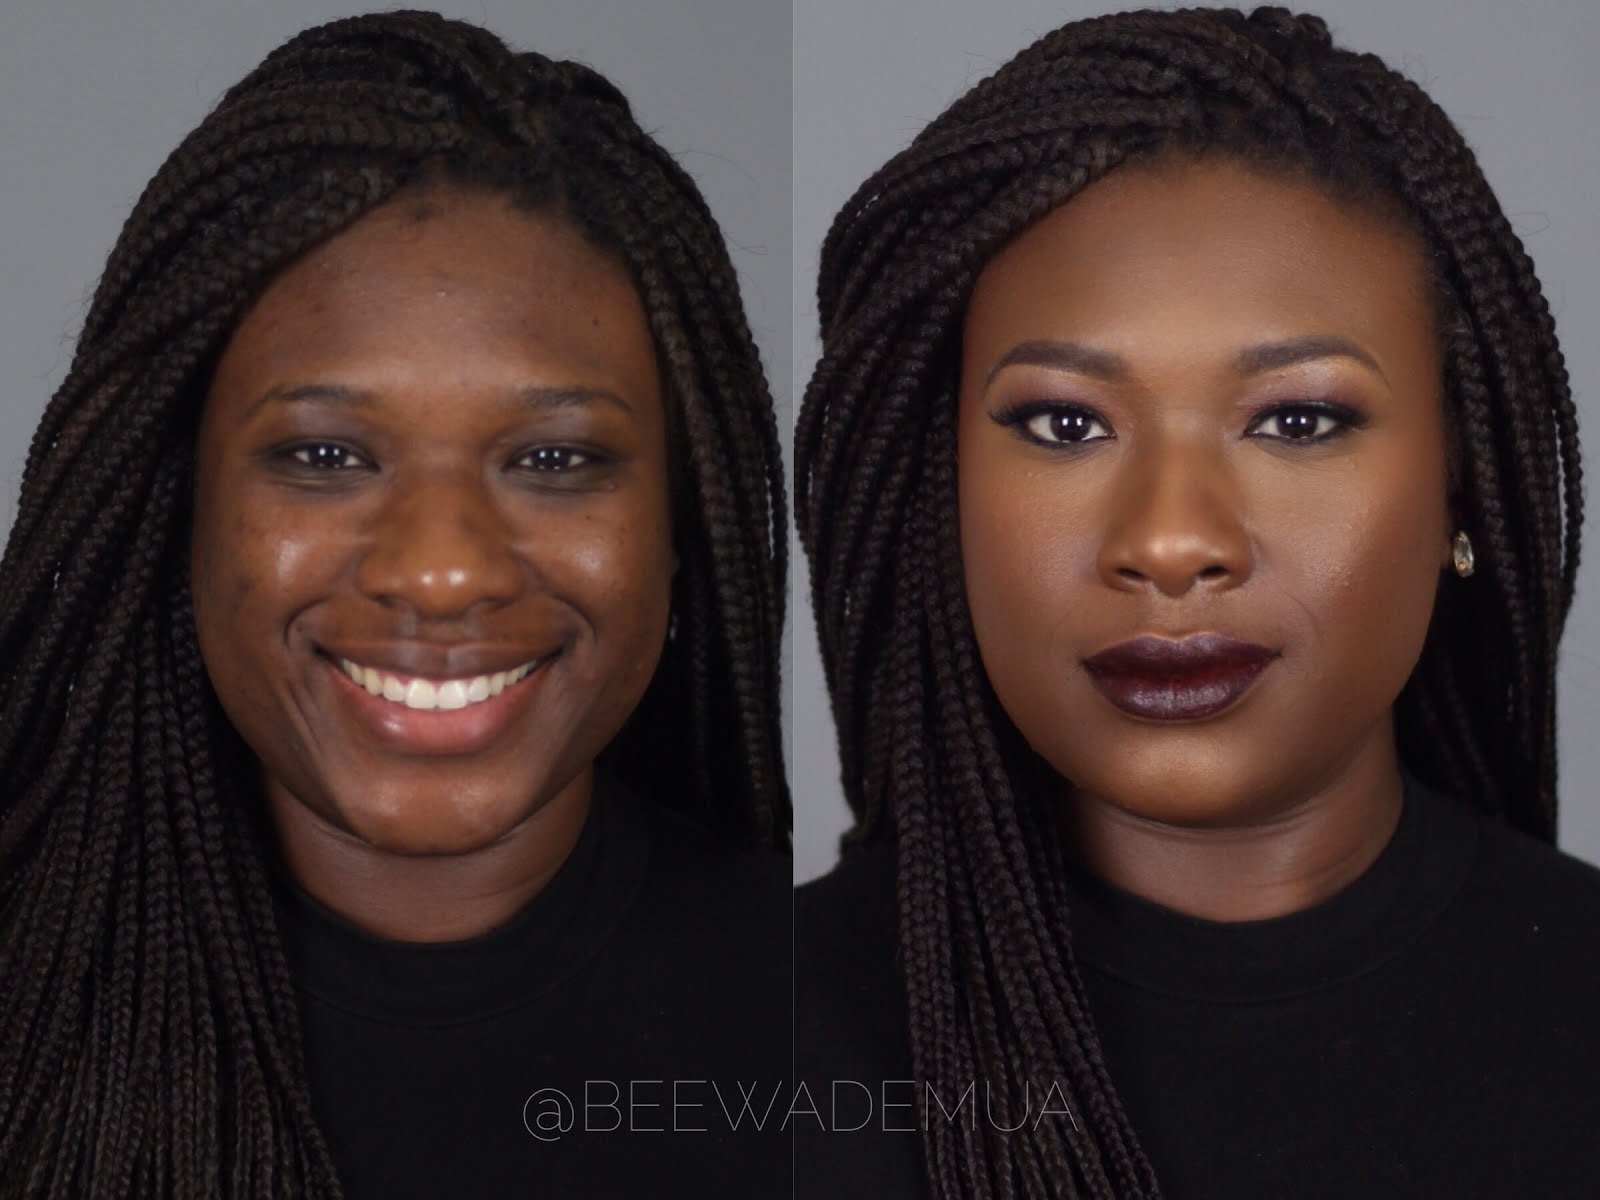 Black Women Before And After Makeup | Www.pixshark.com - Images Galleries With A Bite!